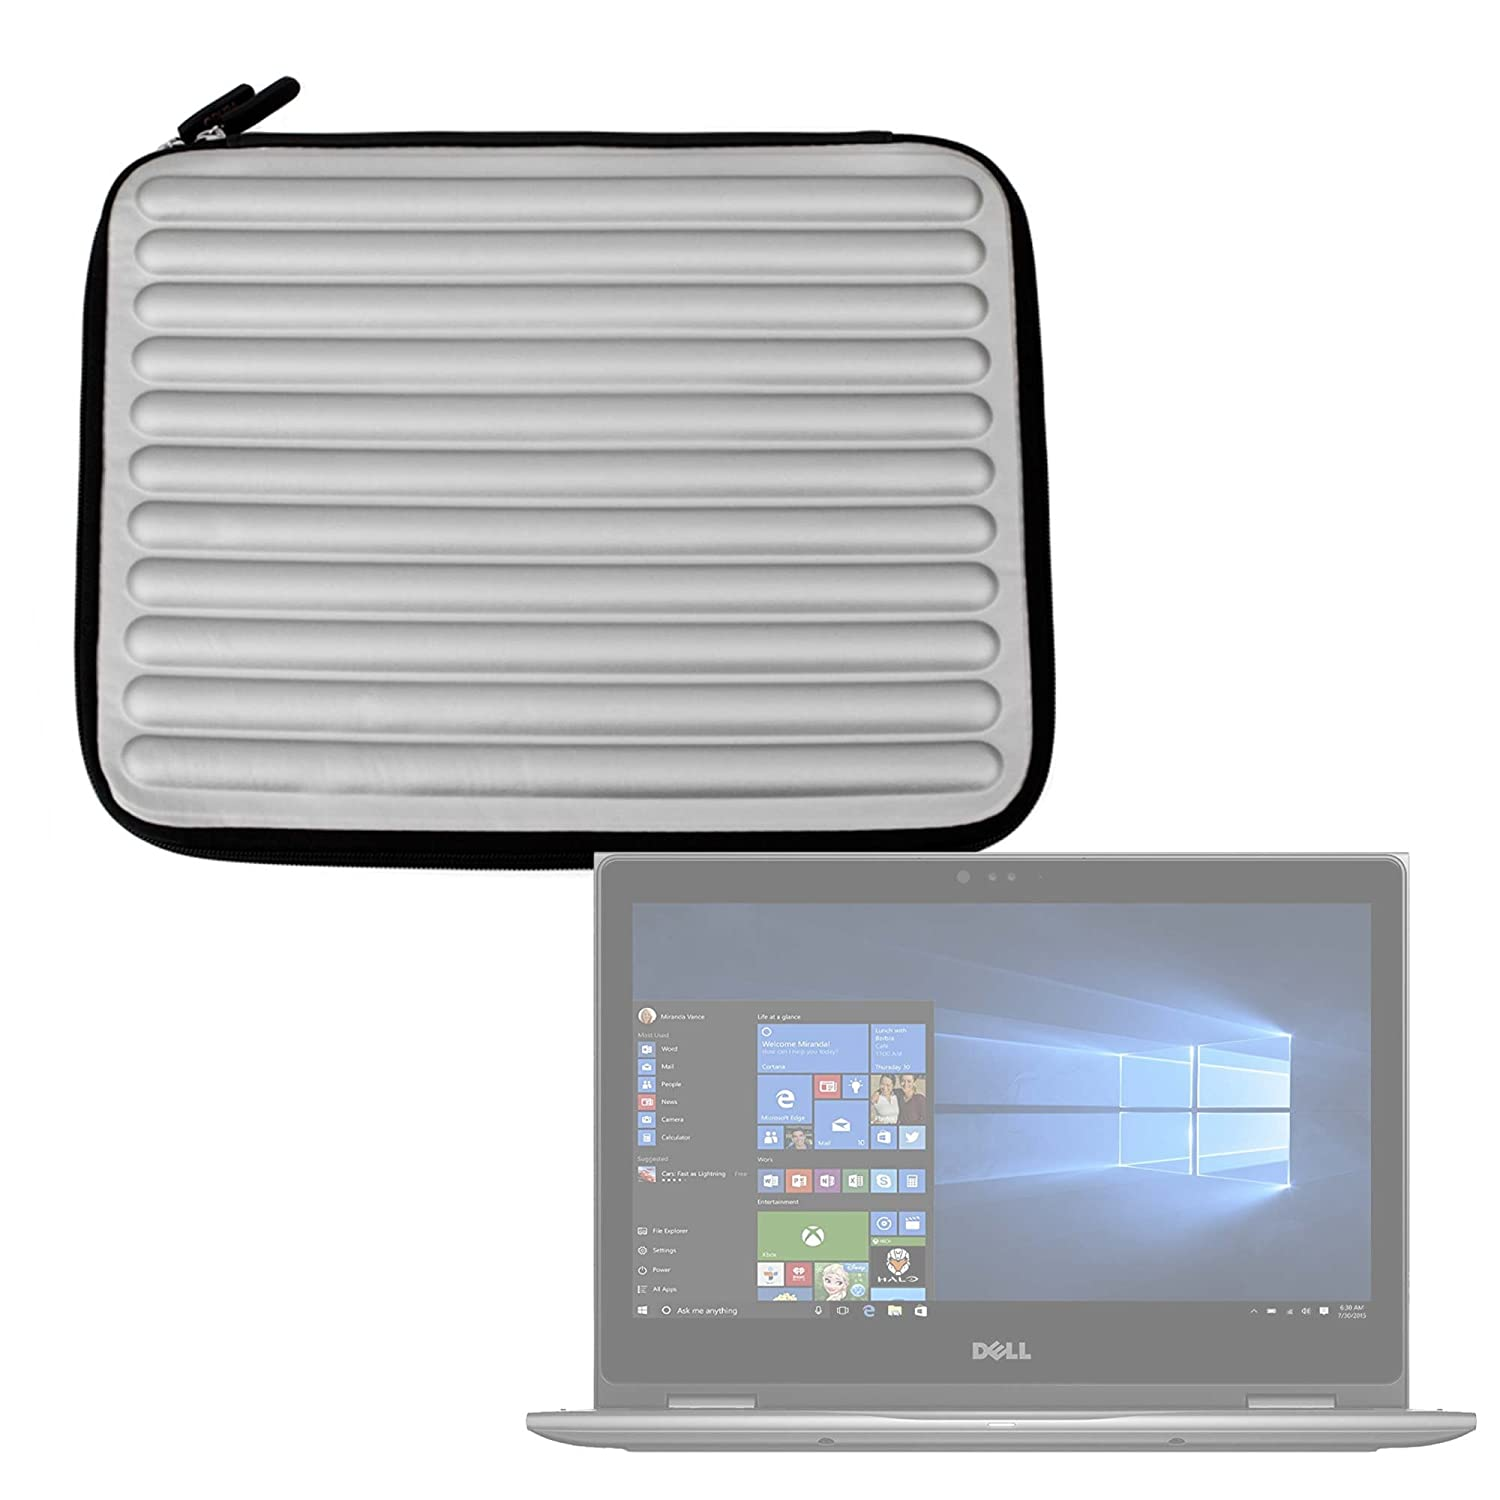 Amazon.com: DURAGADGET Silver Laptop Sleeve/Case in Shock ...